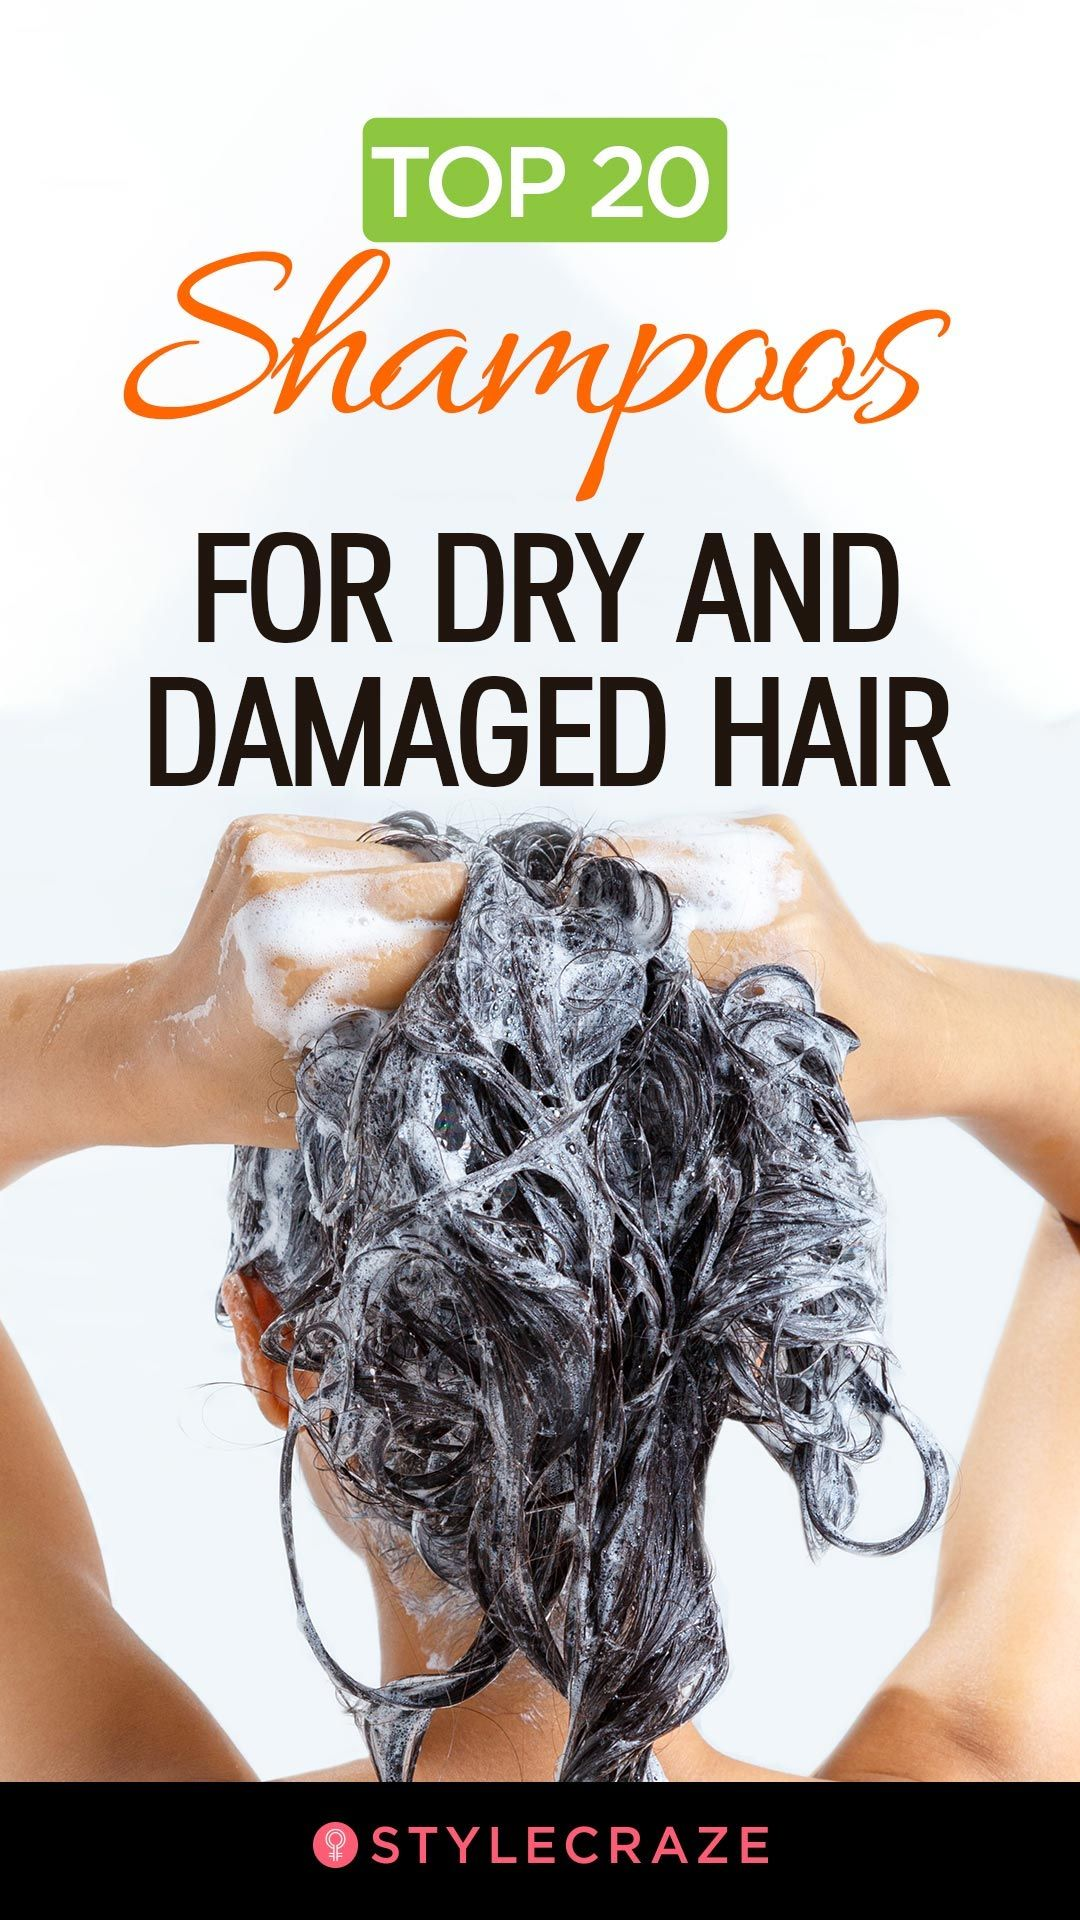 16 Best Shampoos (Reviews) For Dry And Damaged Hair In